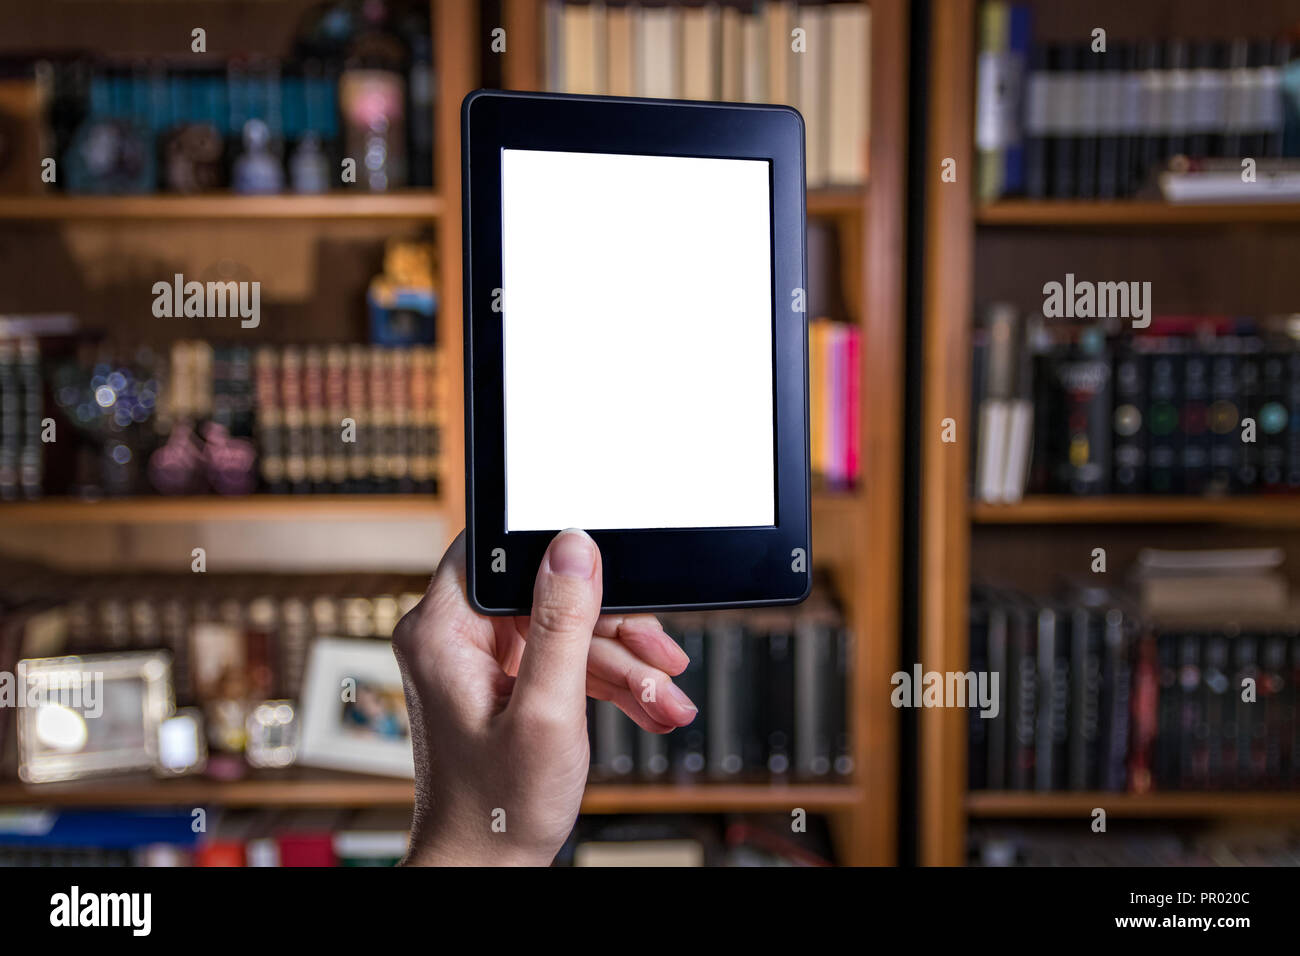 Womand hand holding e reader in front of bookshelves - Stock Image